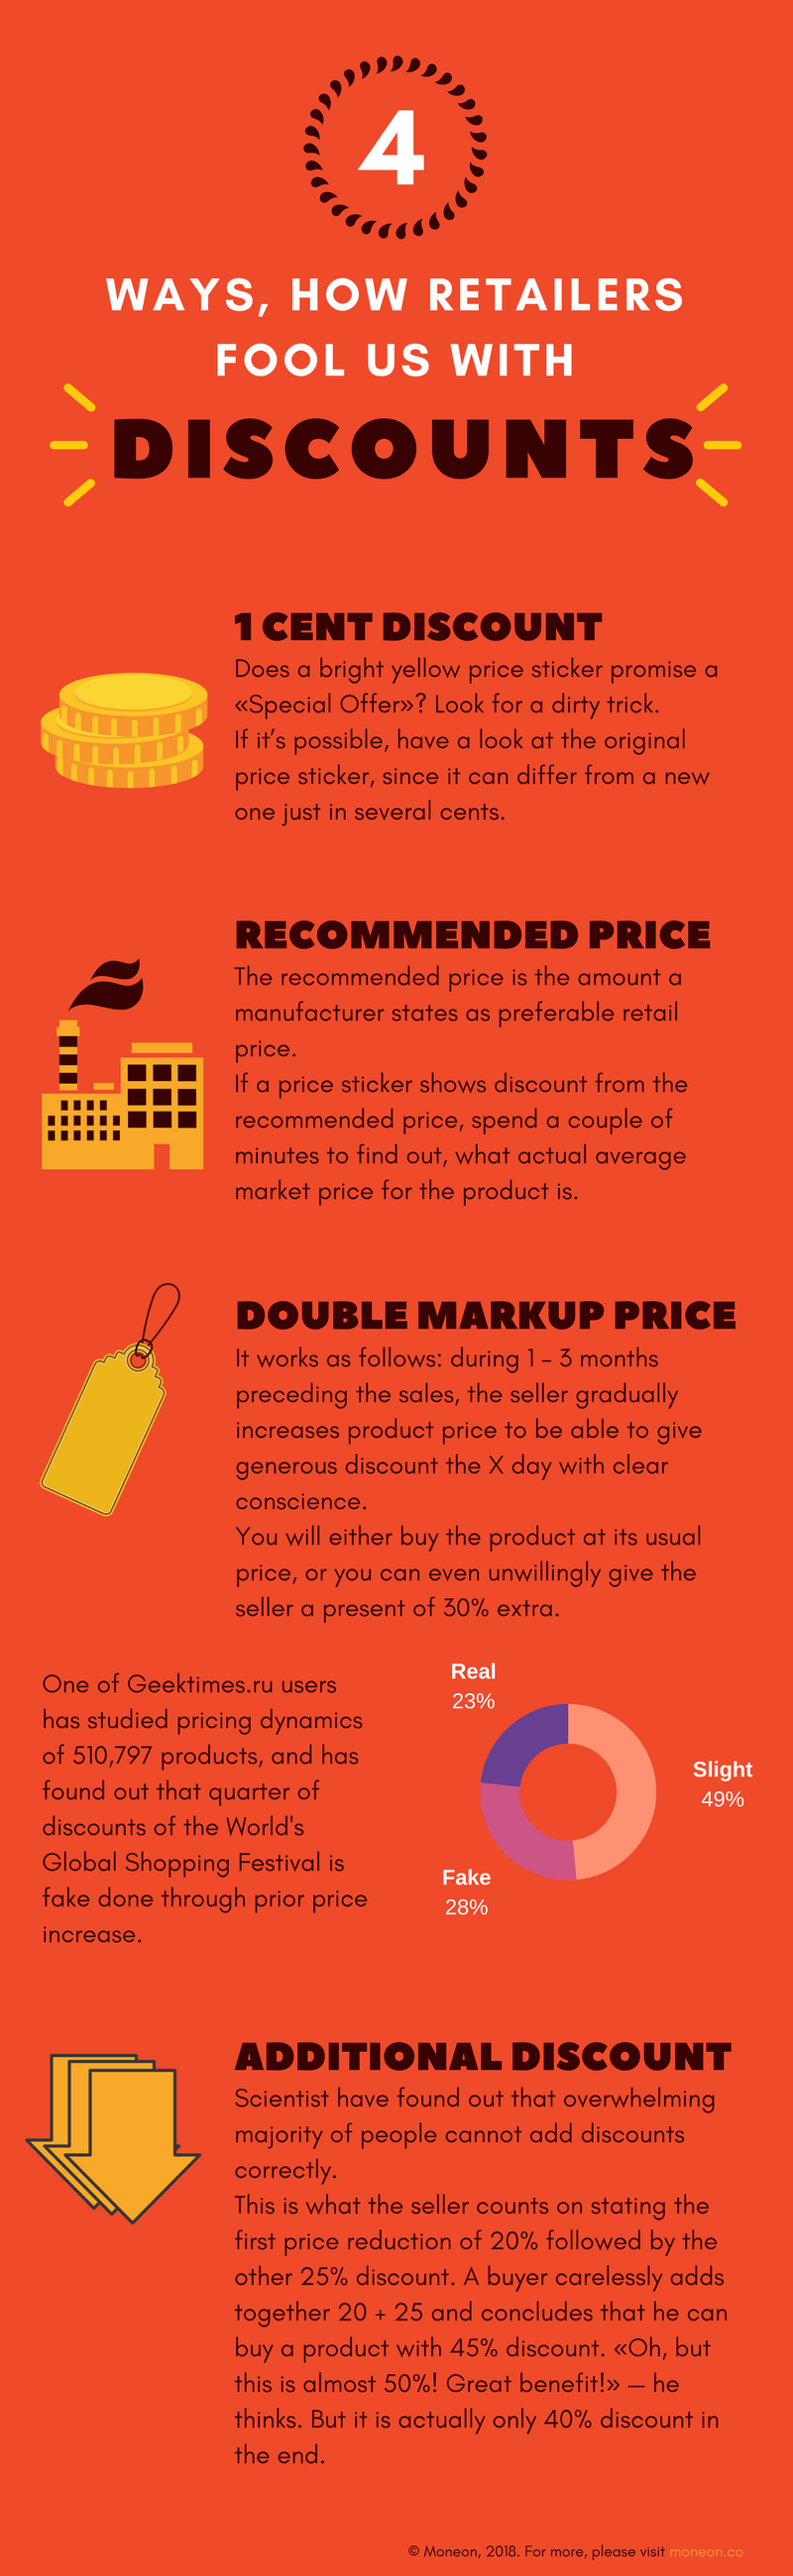 4 ways how retailers fool us with discounts 💥 [Infographic]